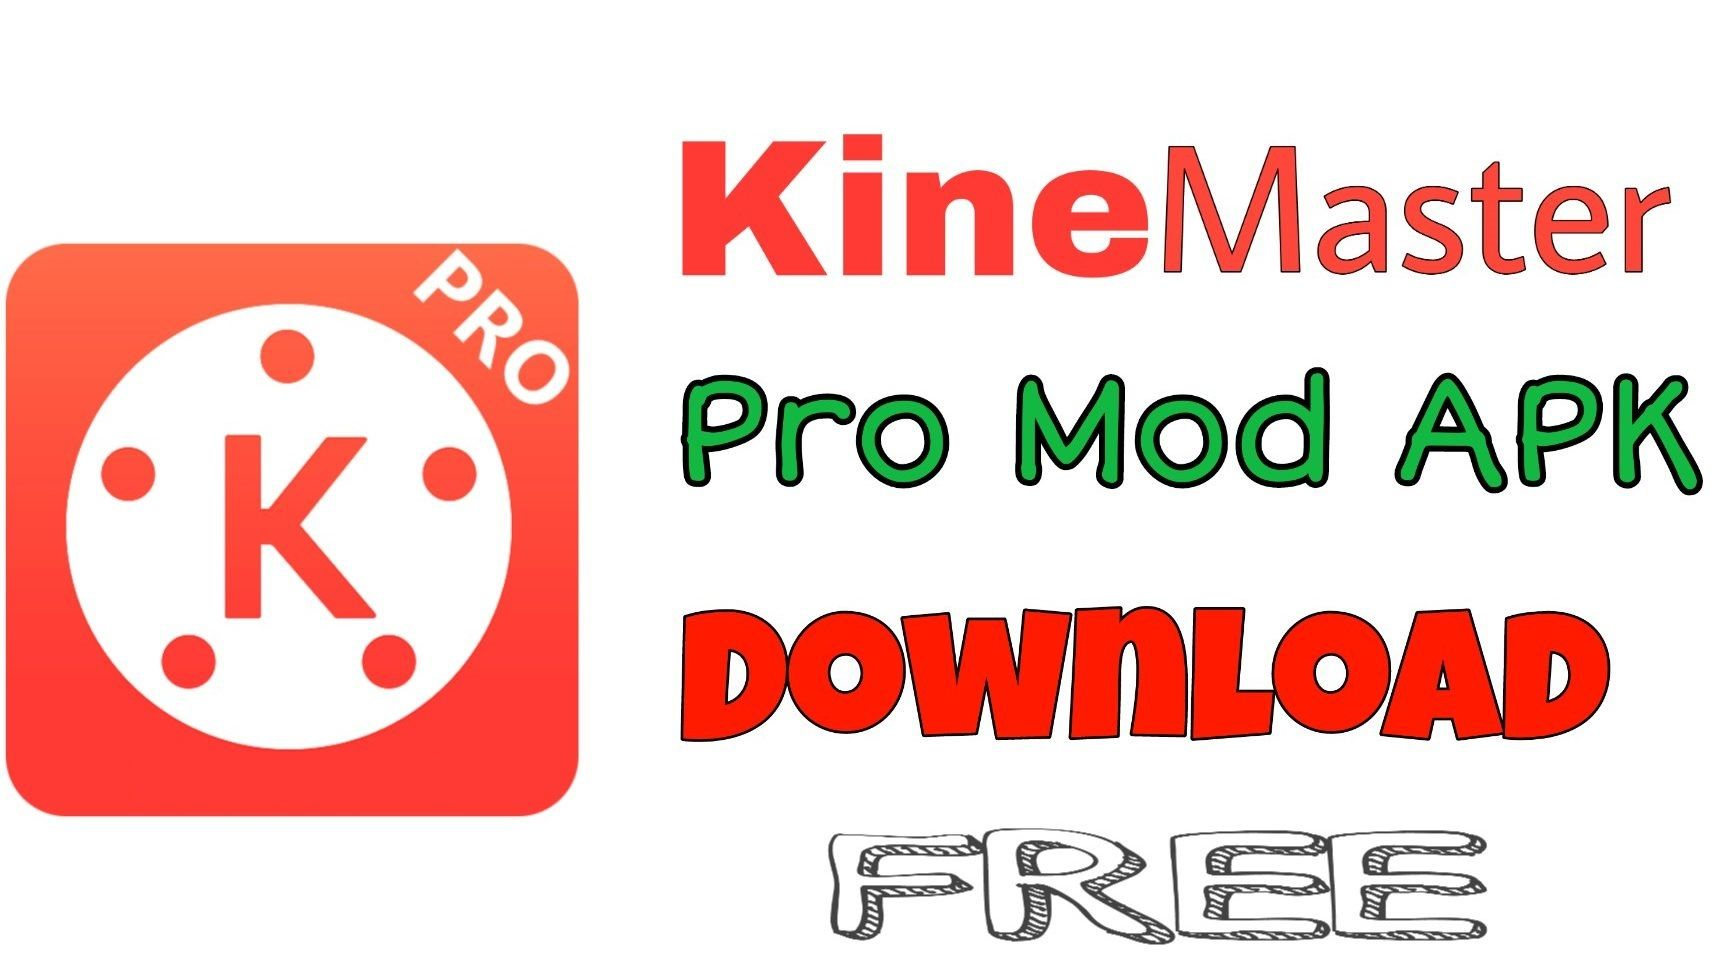 Kinemaster X-PRO MOD APK Download Latest Version | Free video editing  software, Video editing software, Download